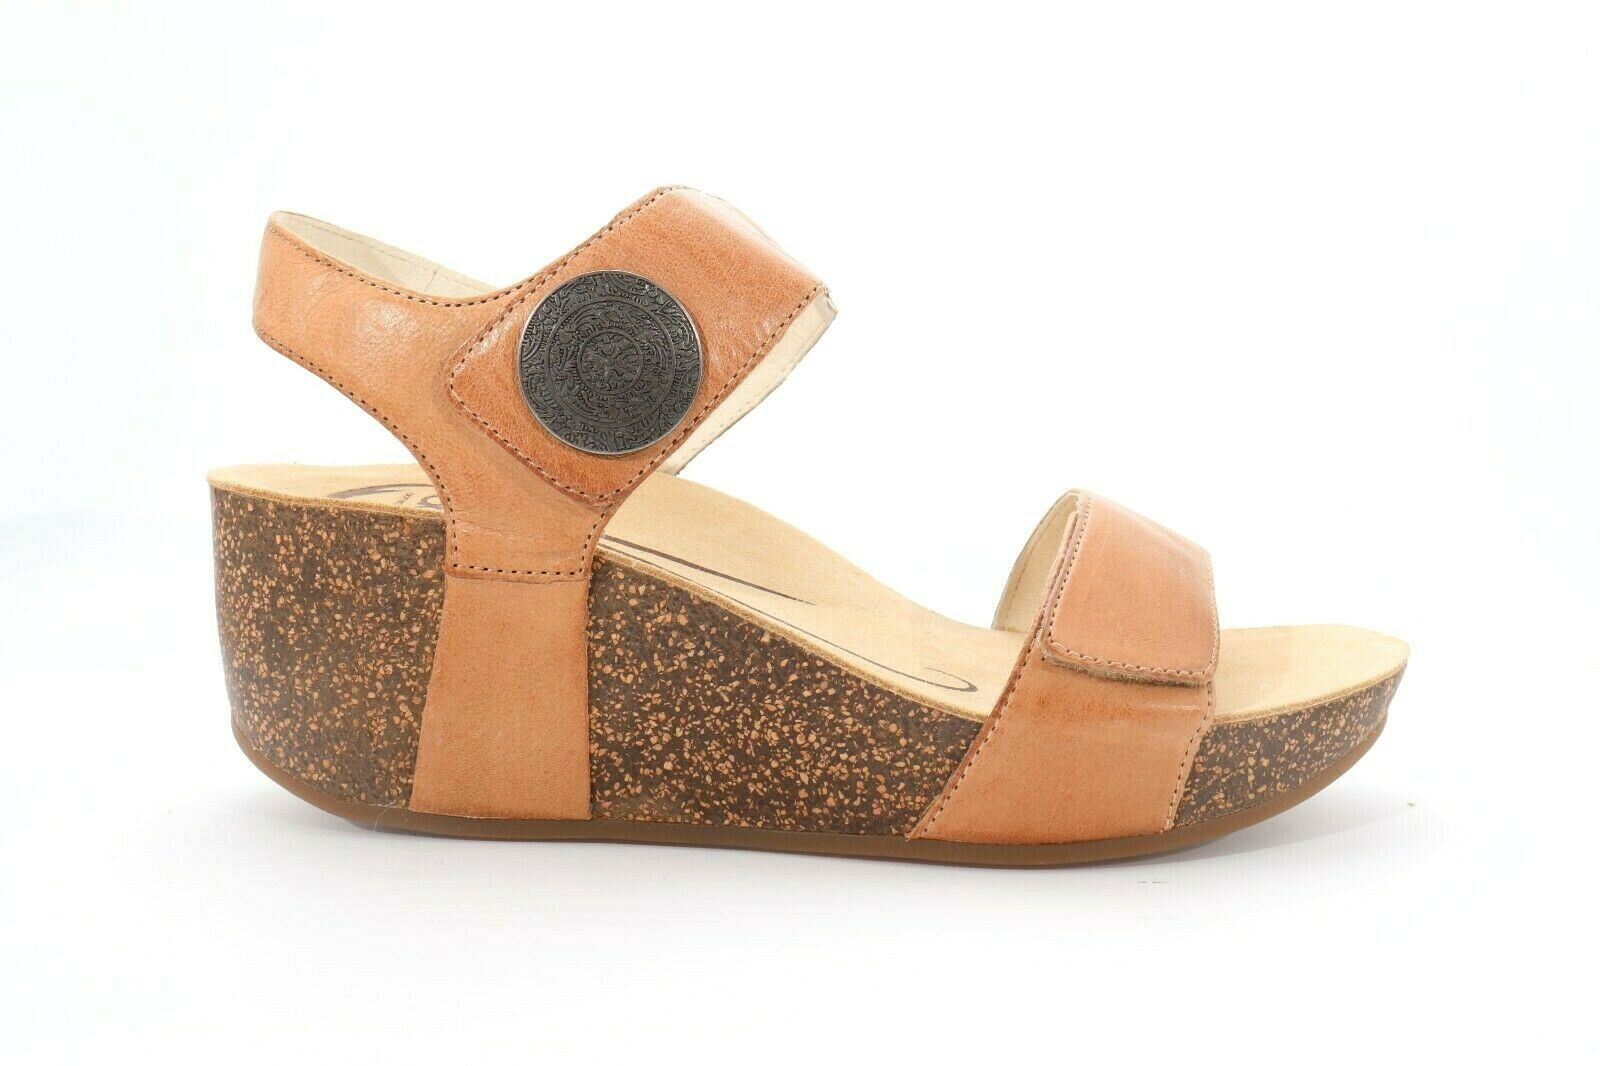 Abeo Una Wedges Sandals Stone Women's Size US 10 Neutral Footbed() - $118.80